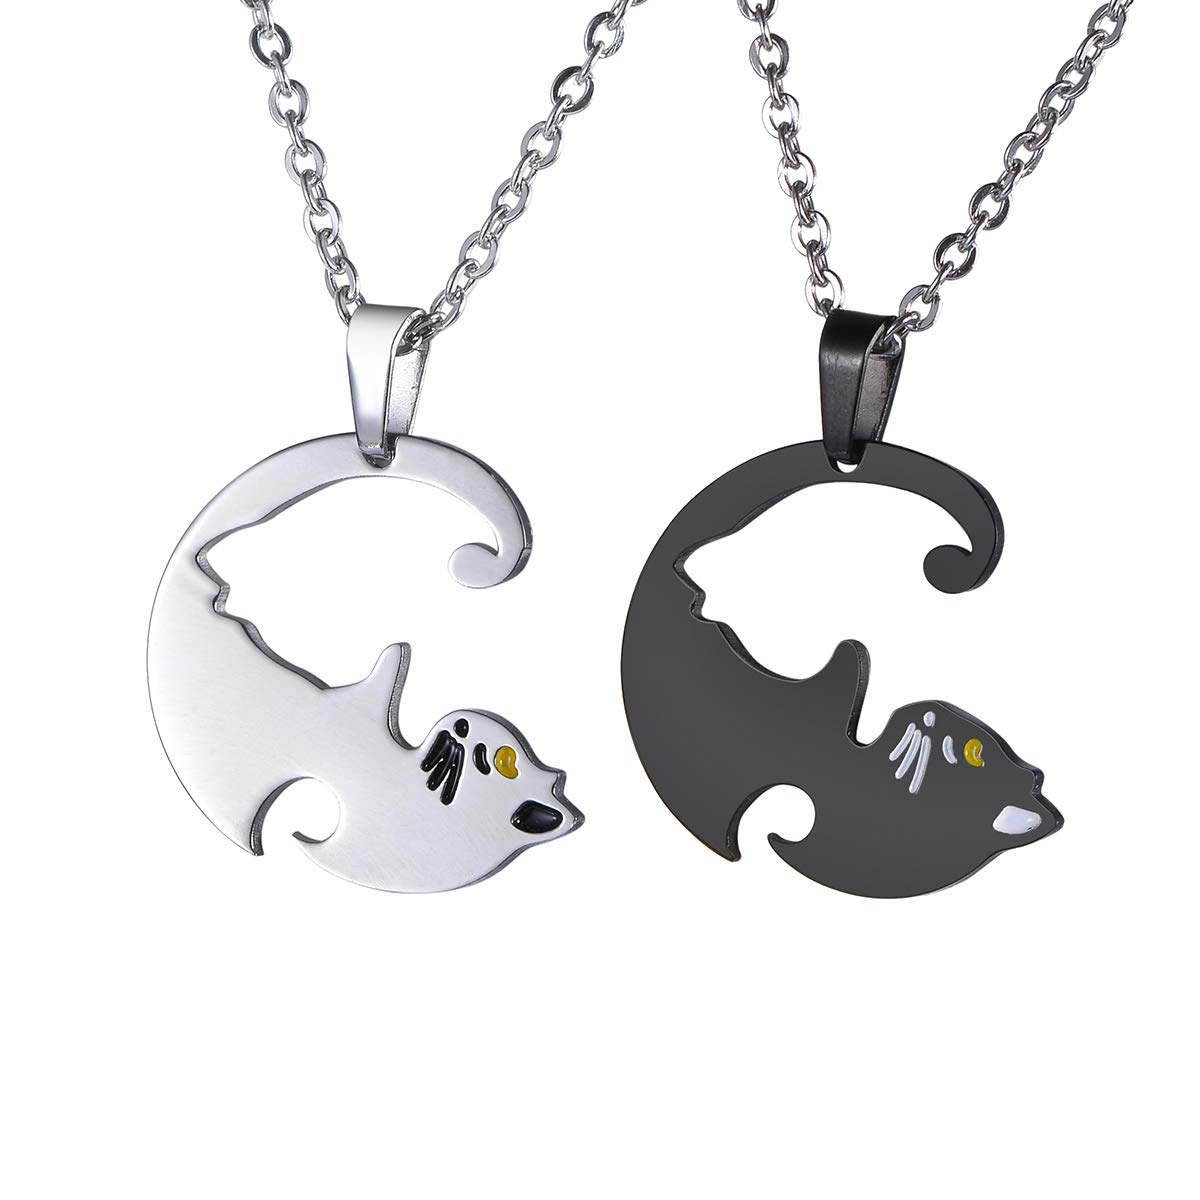 BY 2PCS Cat Pendant Engraved Best Friends Necklace Set Friendship Necklaces Gifts for Teen Girls BFF